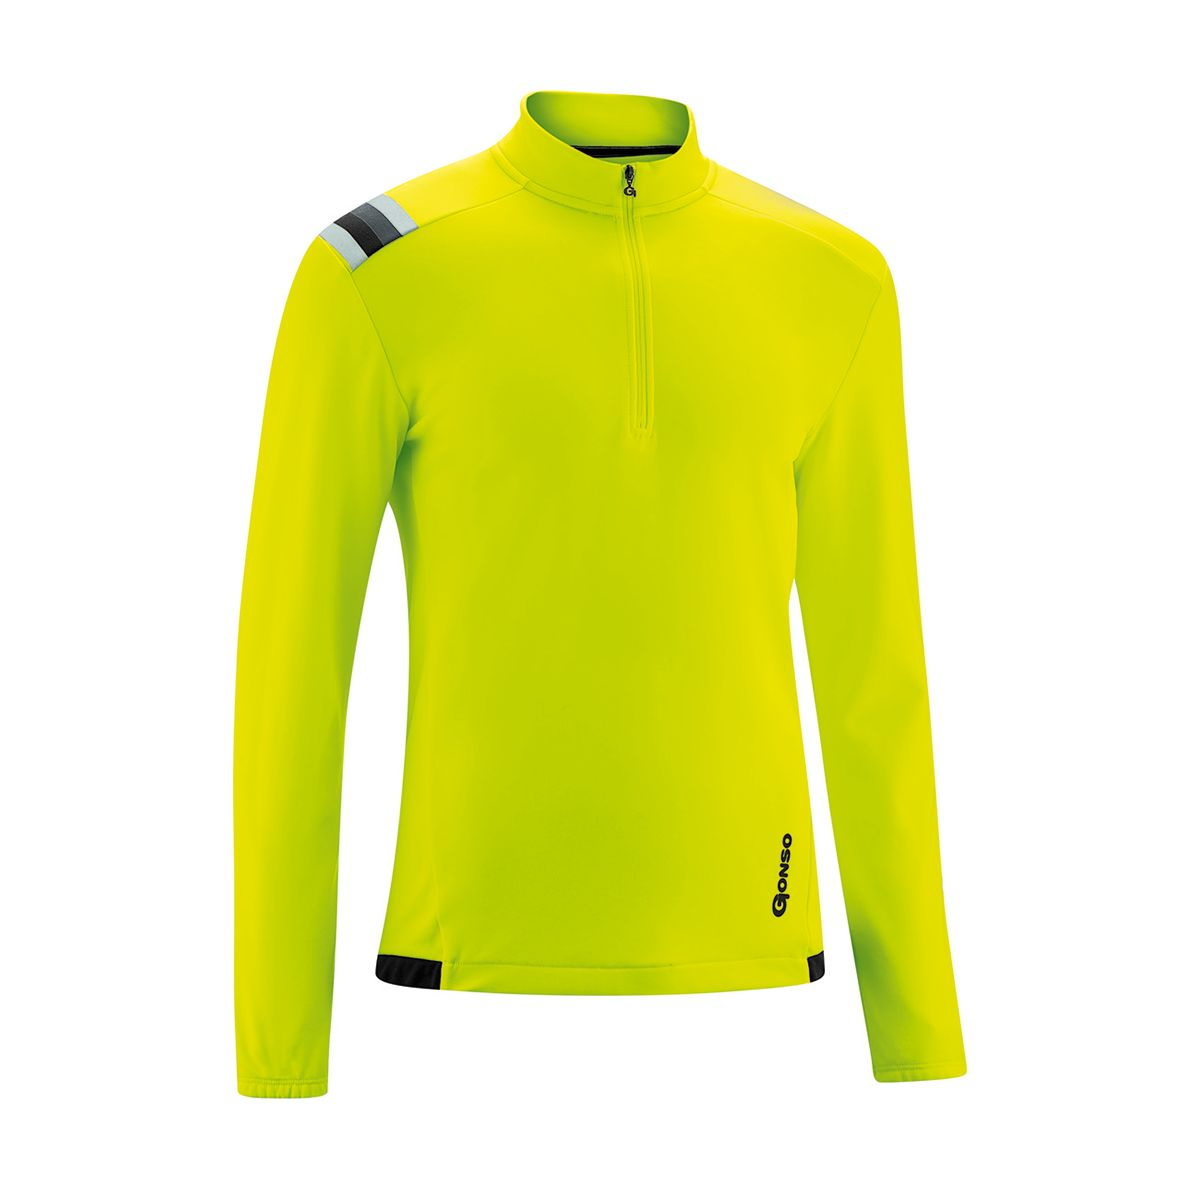 KROIX long sleeve cycling jersey